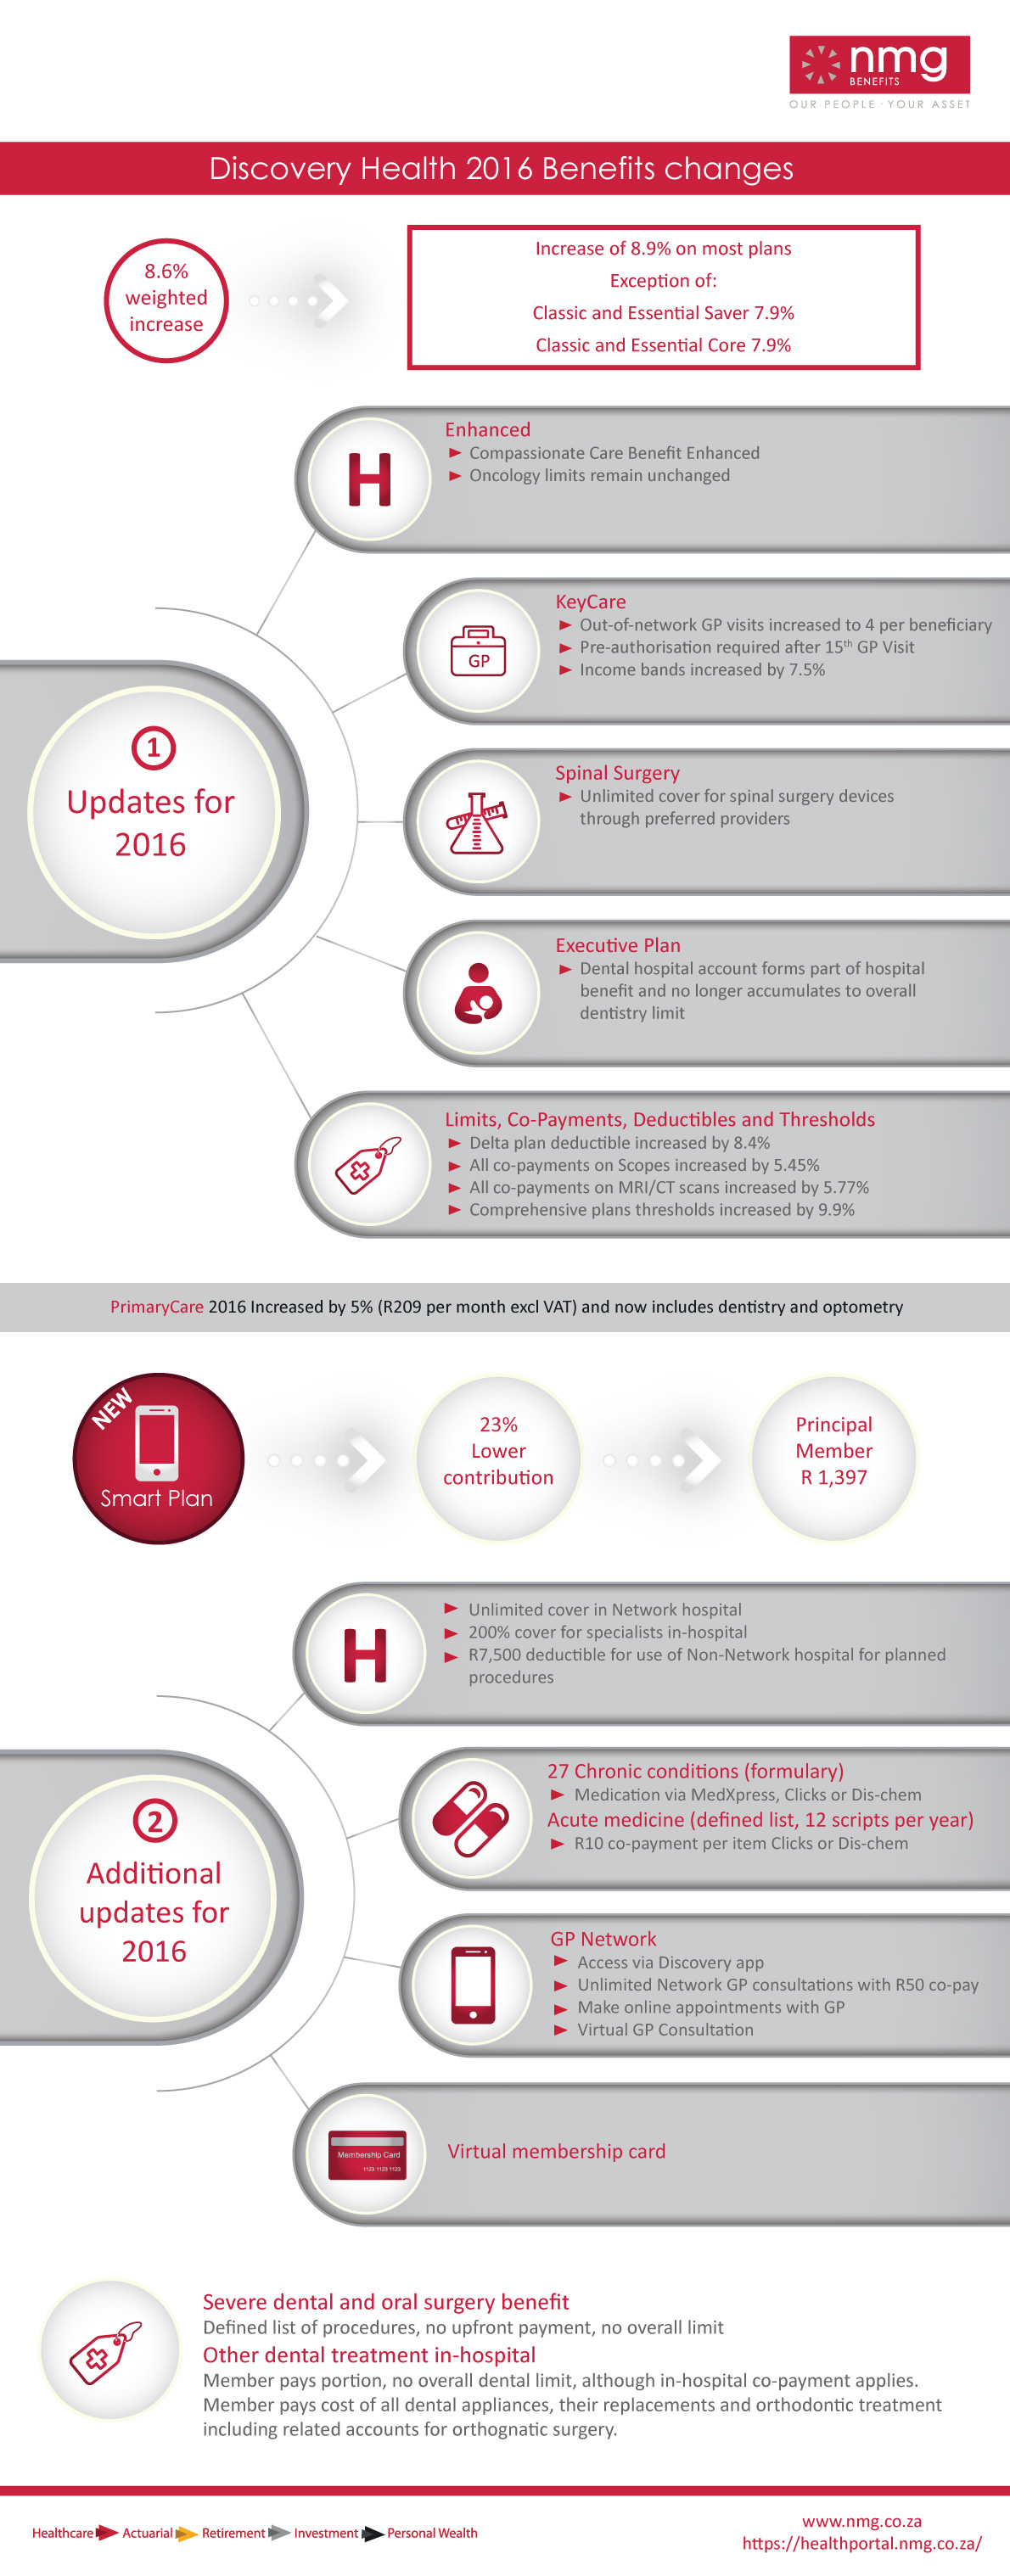 [INFOGRAPHIC] Discovery announces changes for 2016.